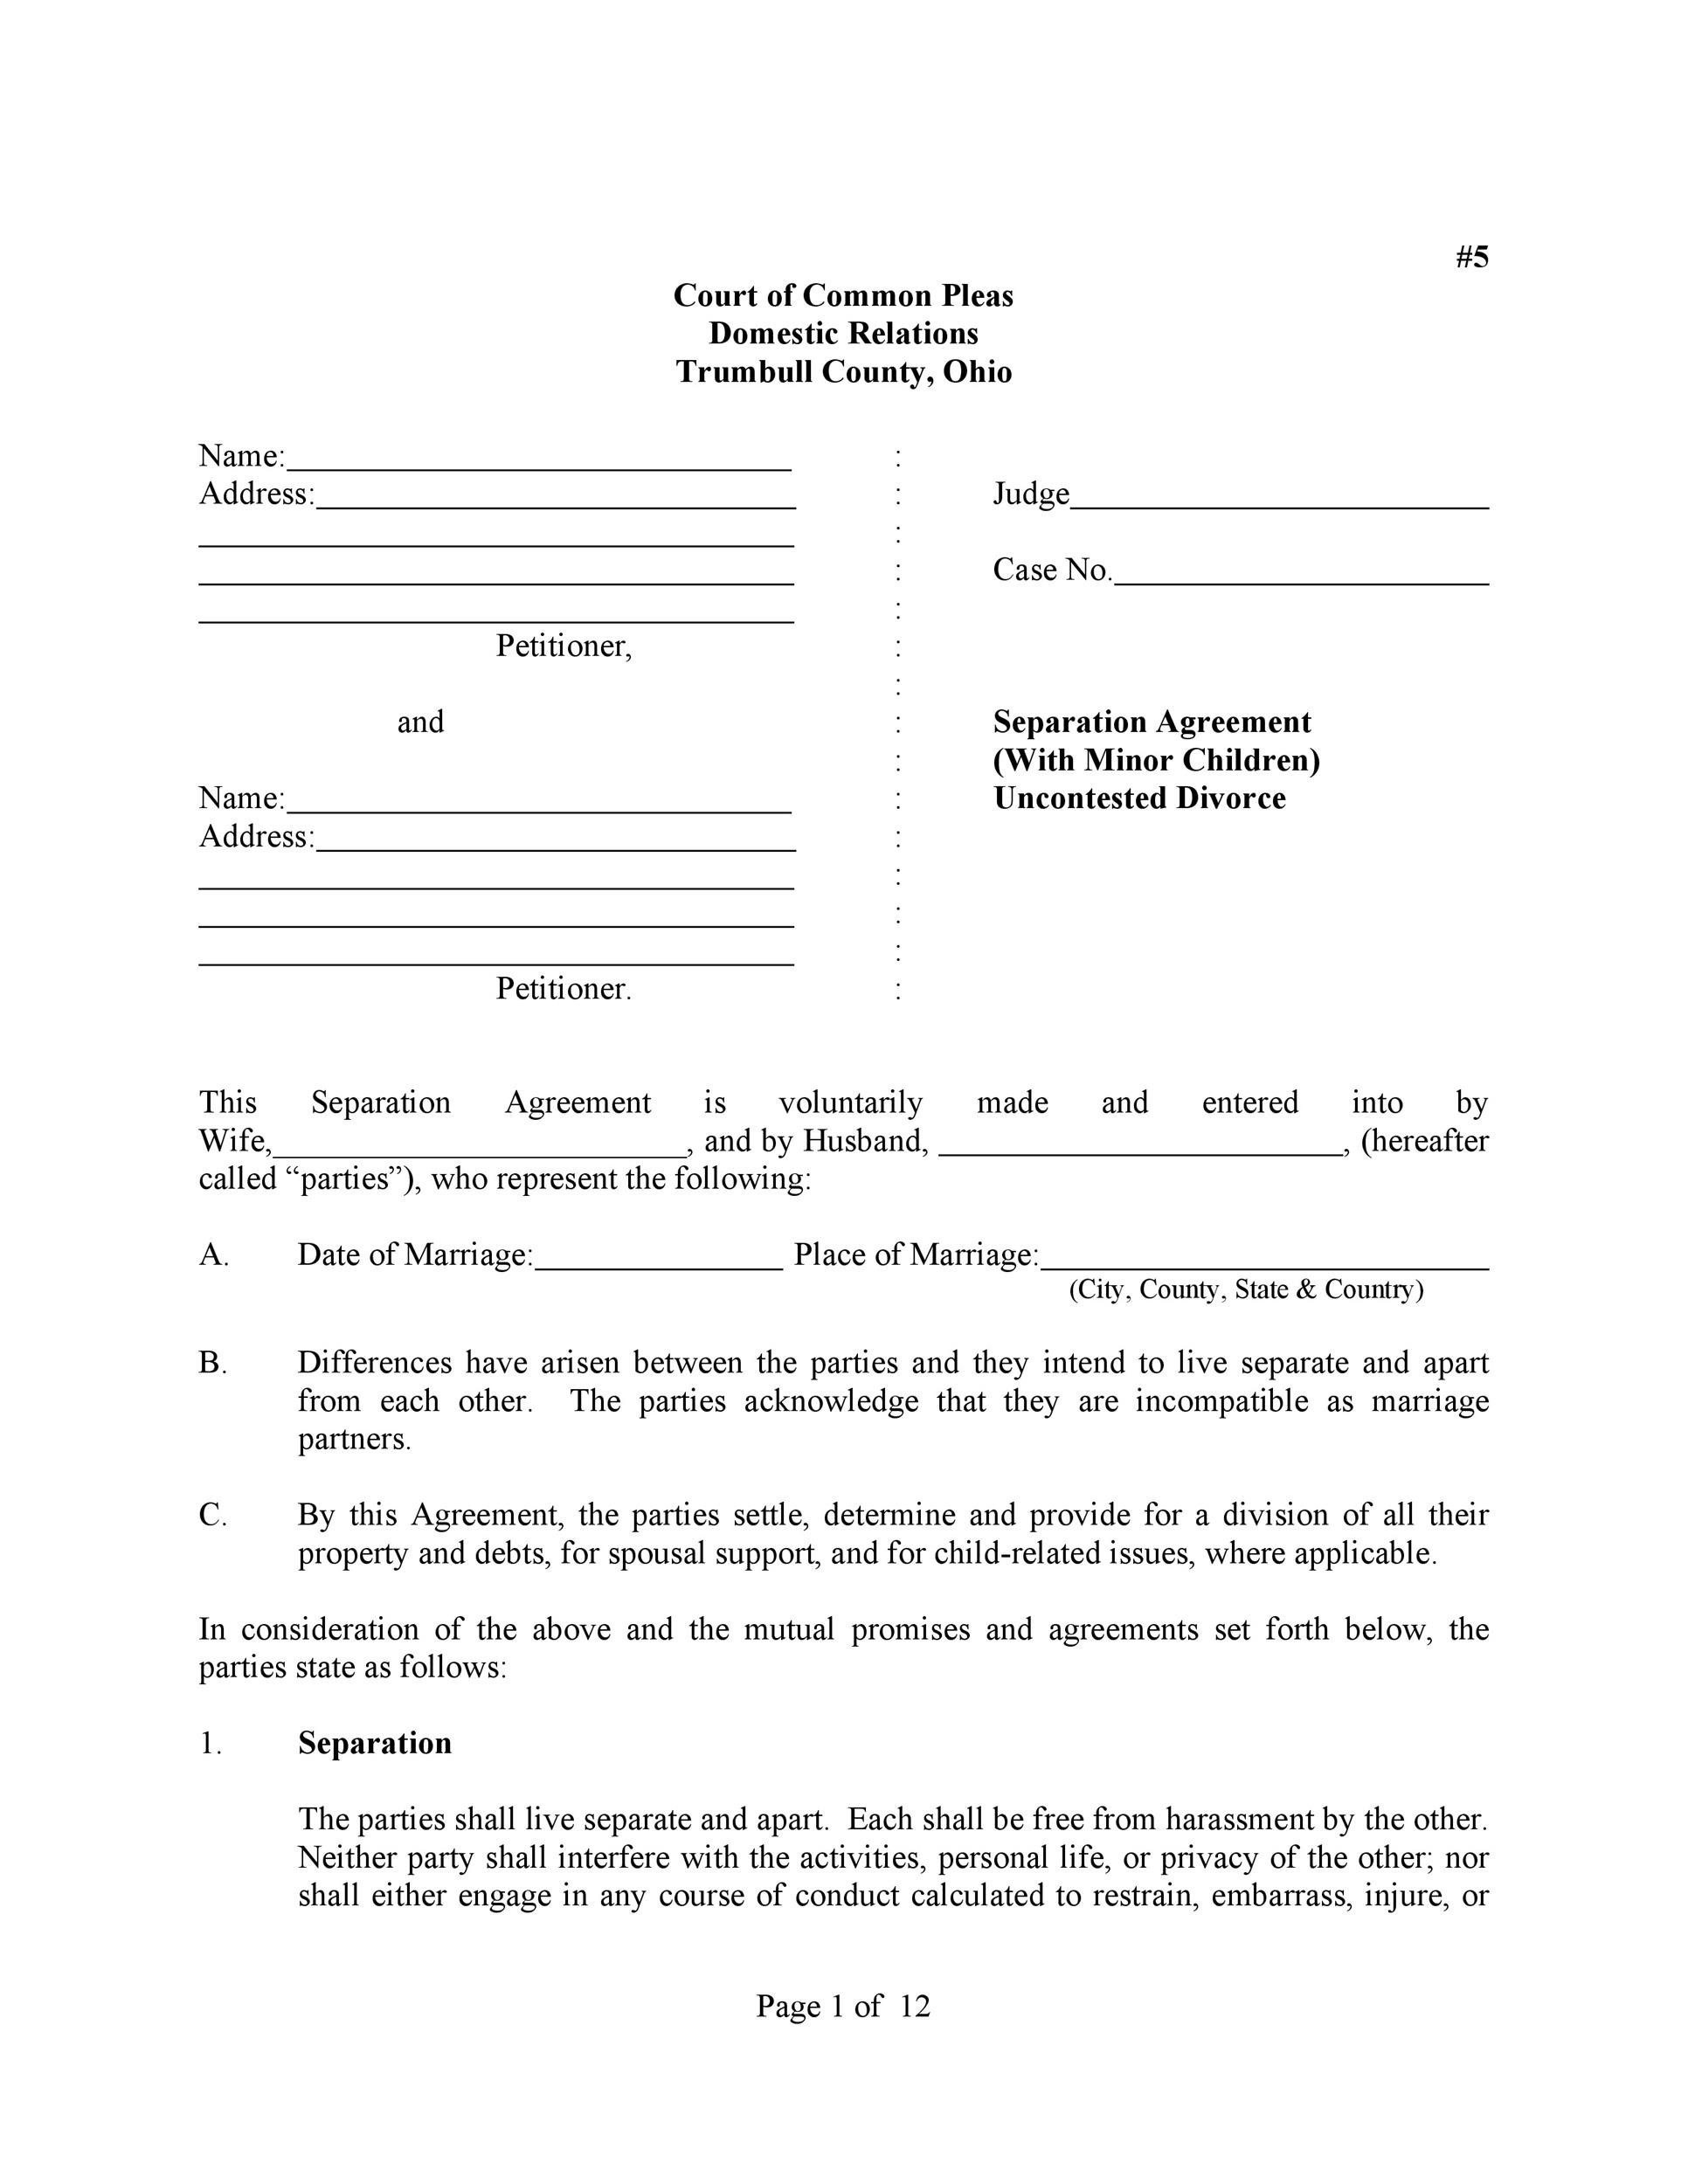 42 Divorce Settlement Agreement Templates 100 Free